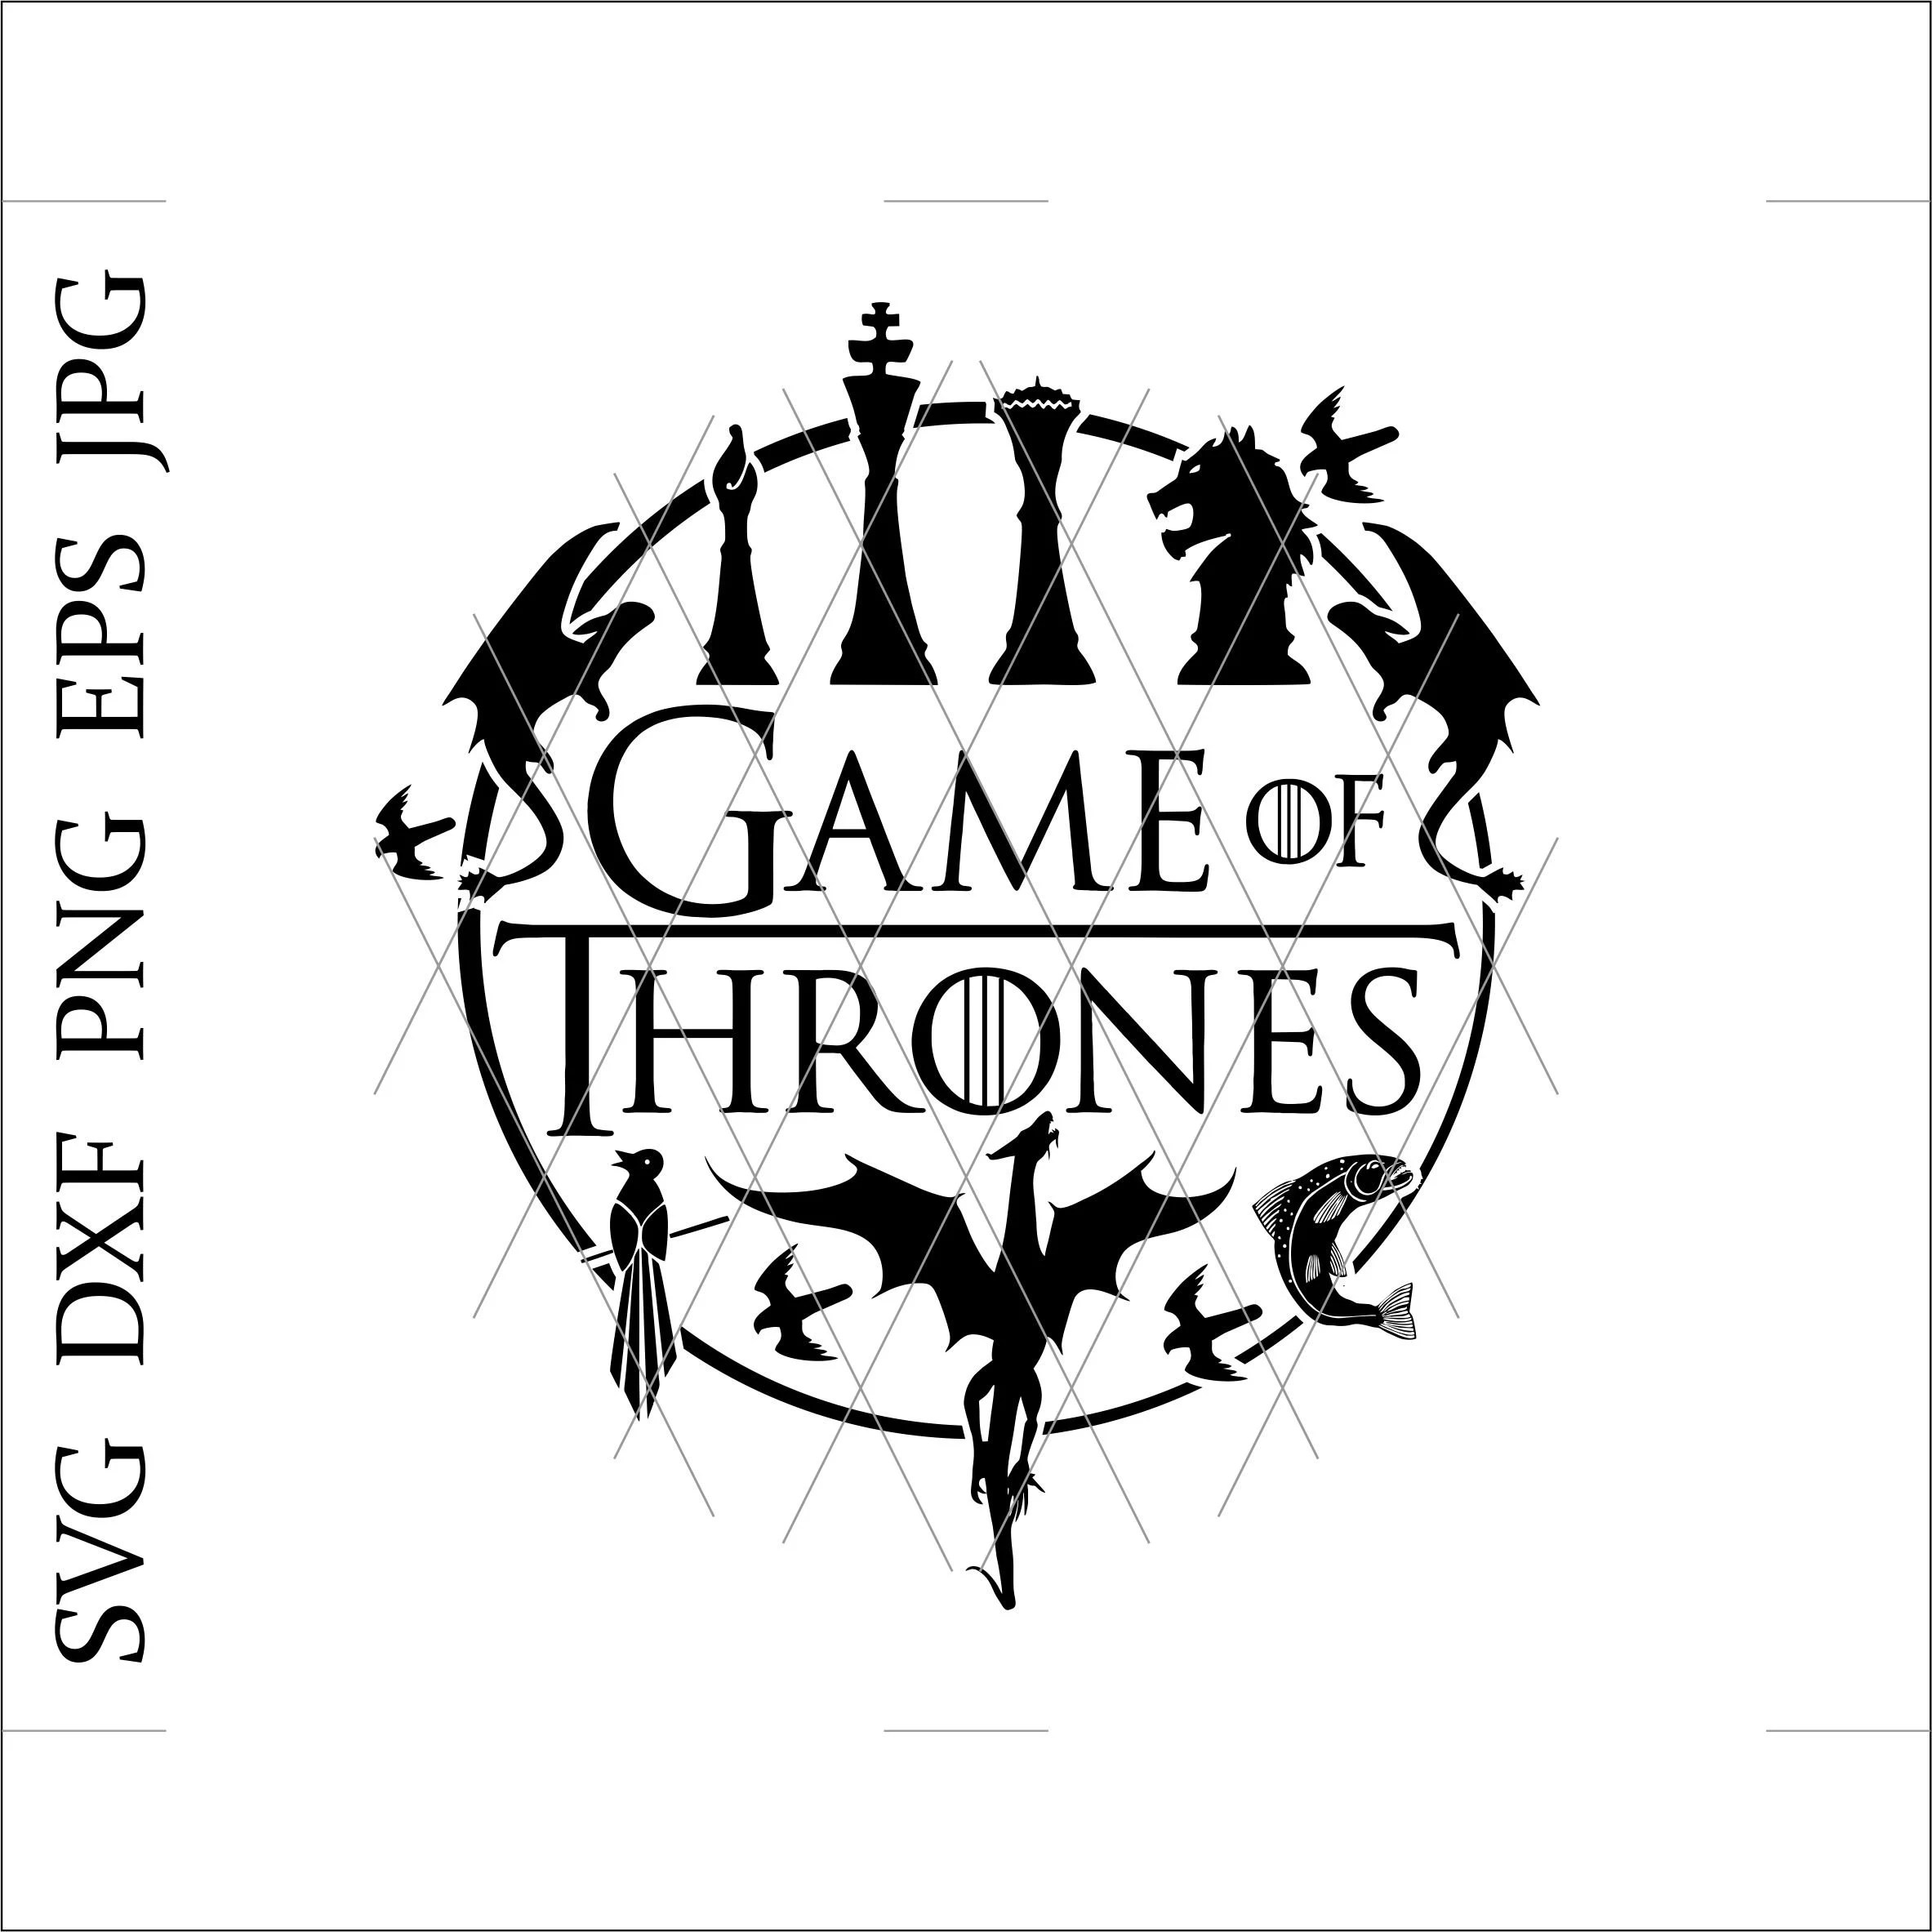 Game Of Thrones Svggame Of Thrones Clipartgame Of Thrones